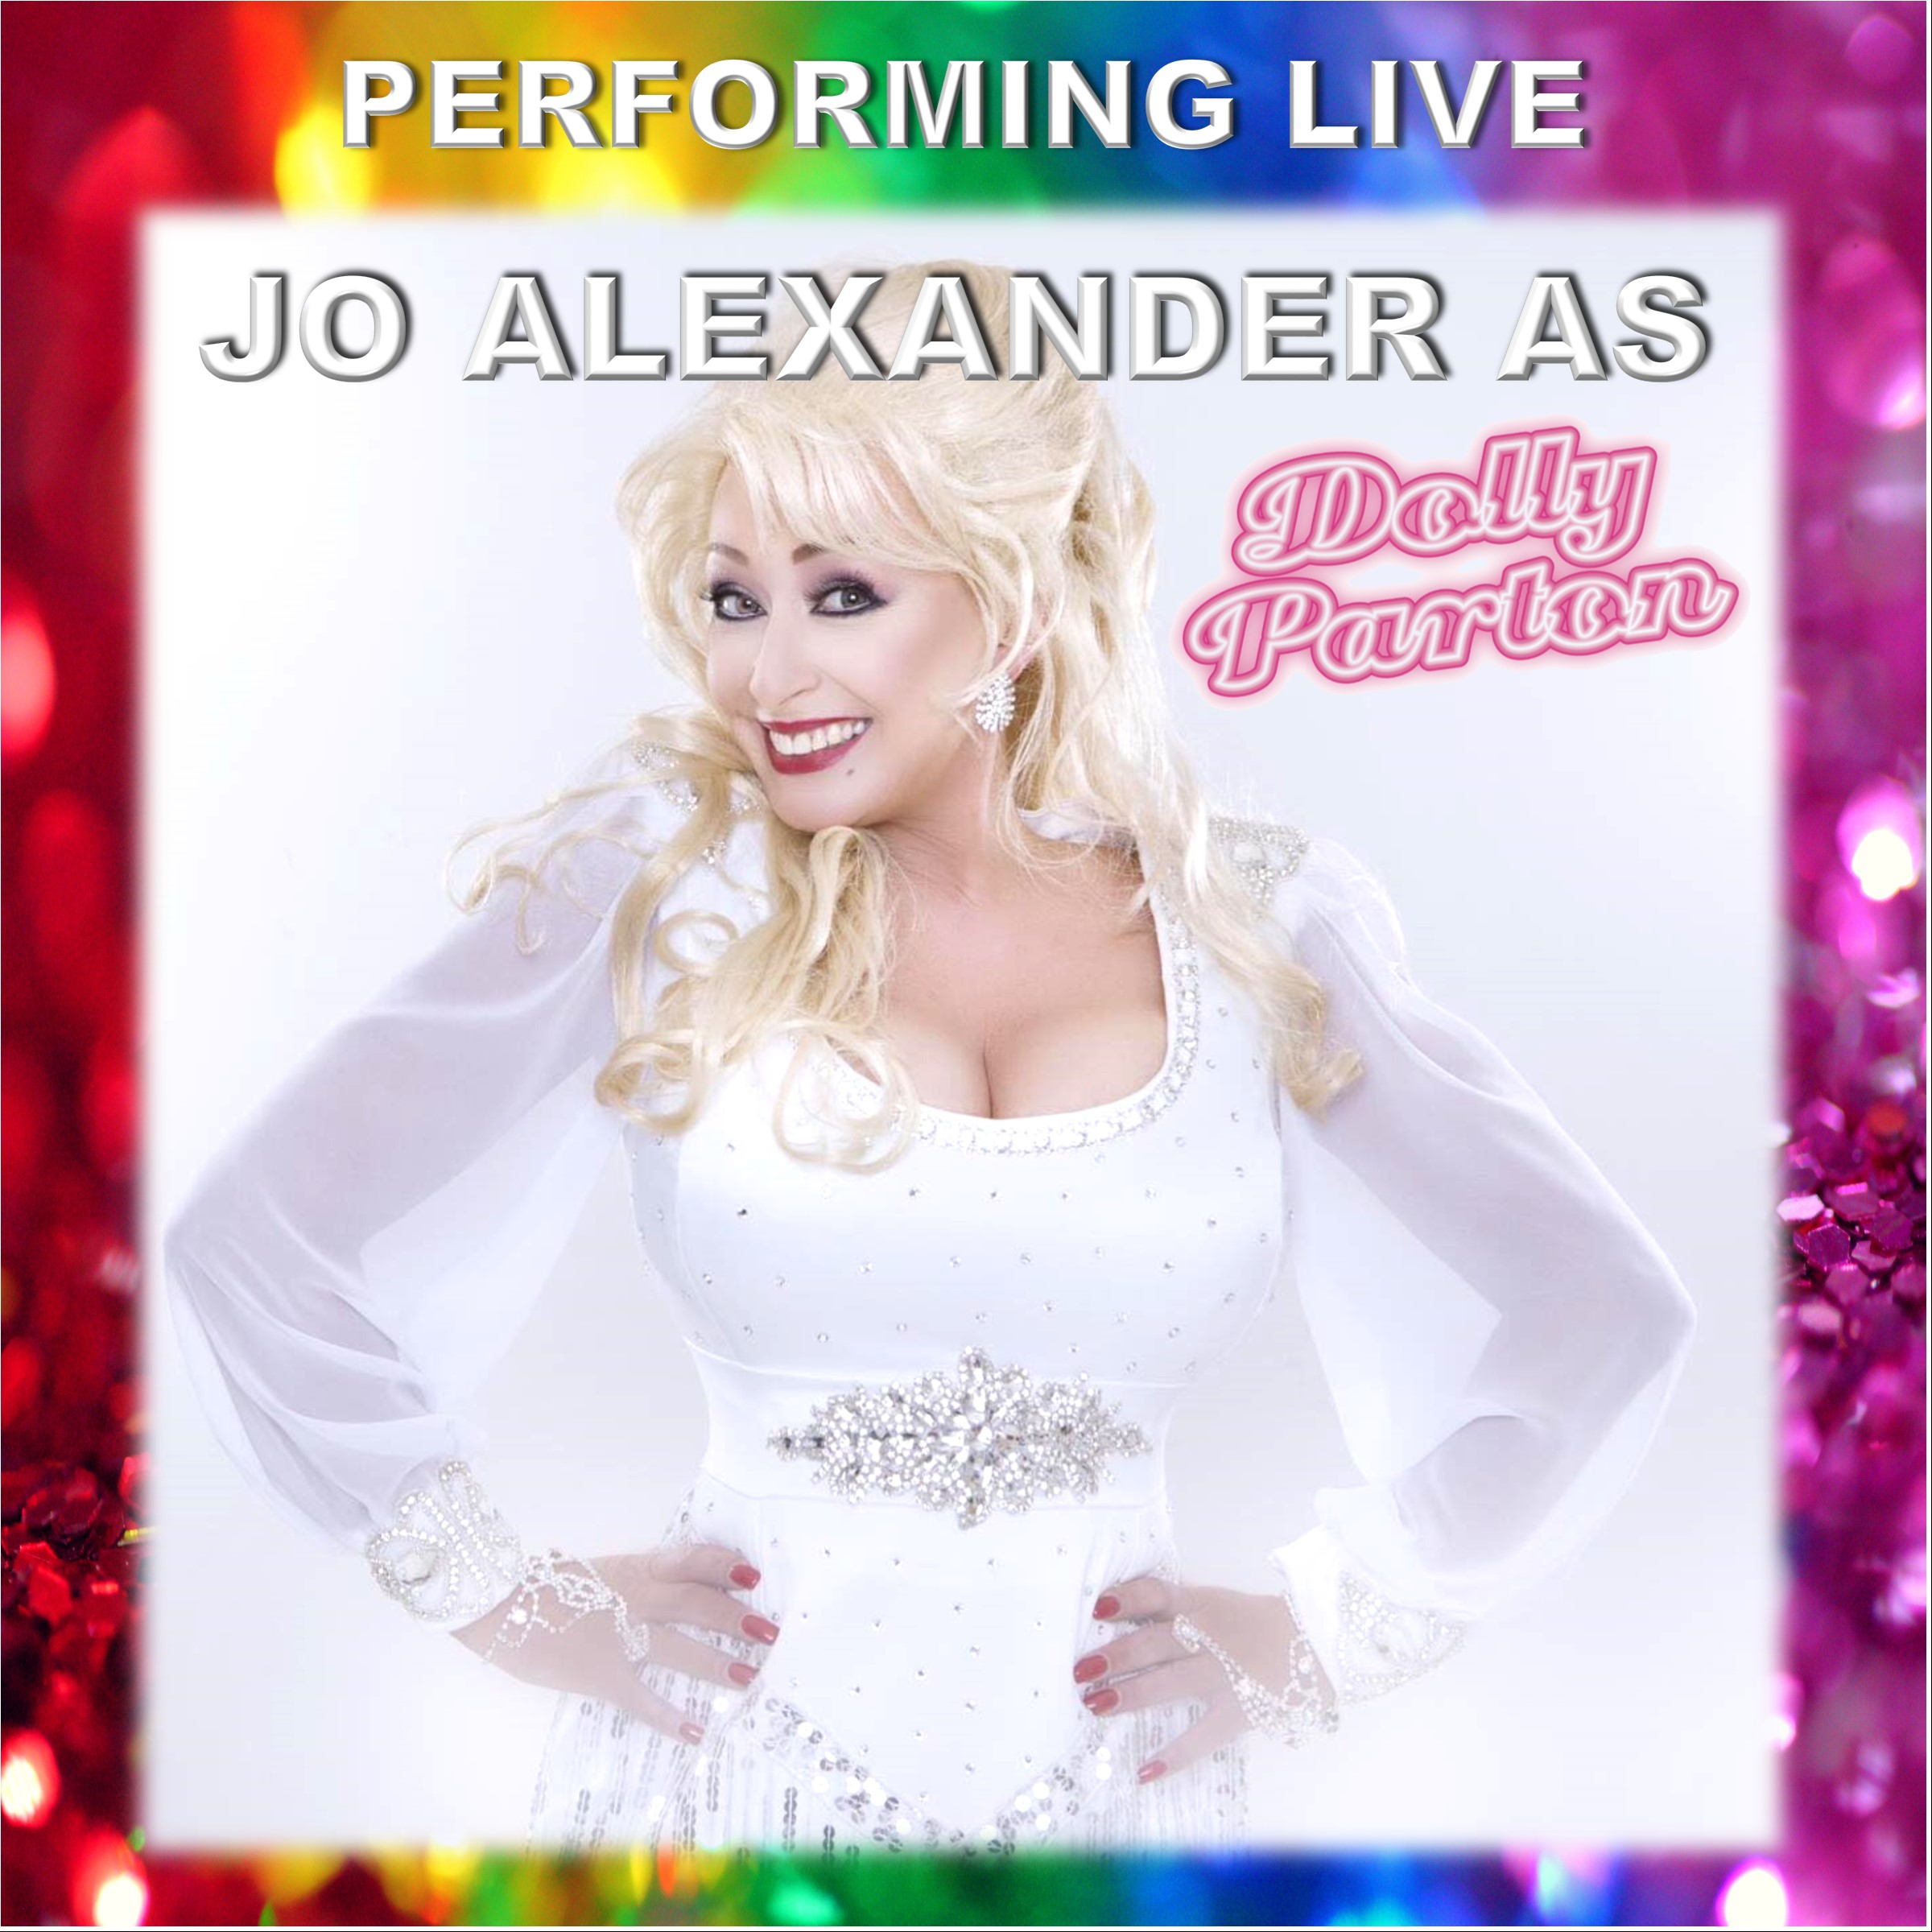 Jo Alexander as Dolly Parton